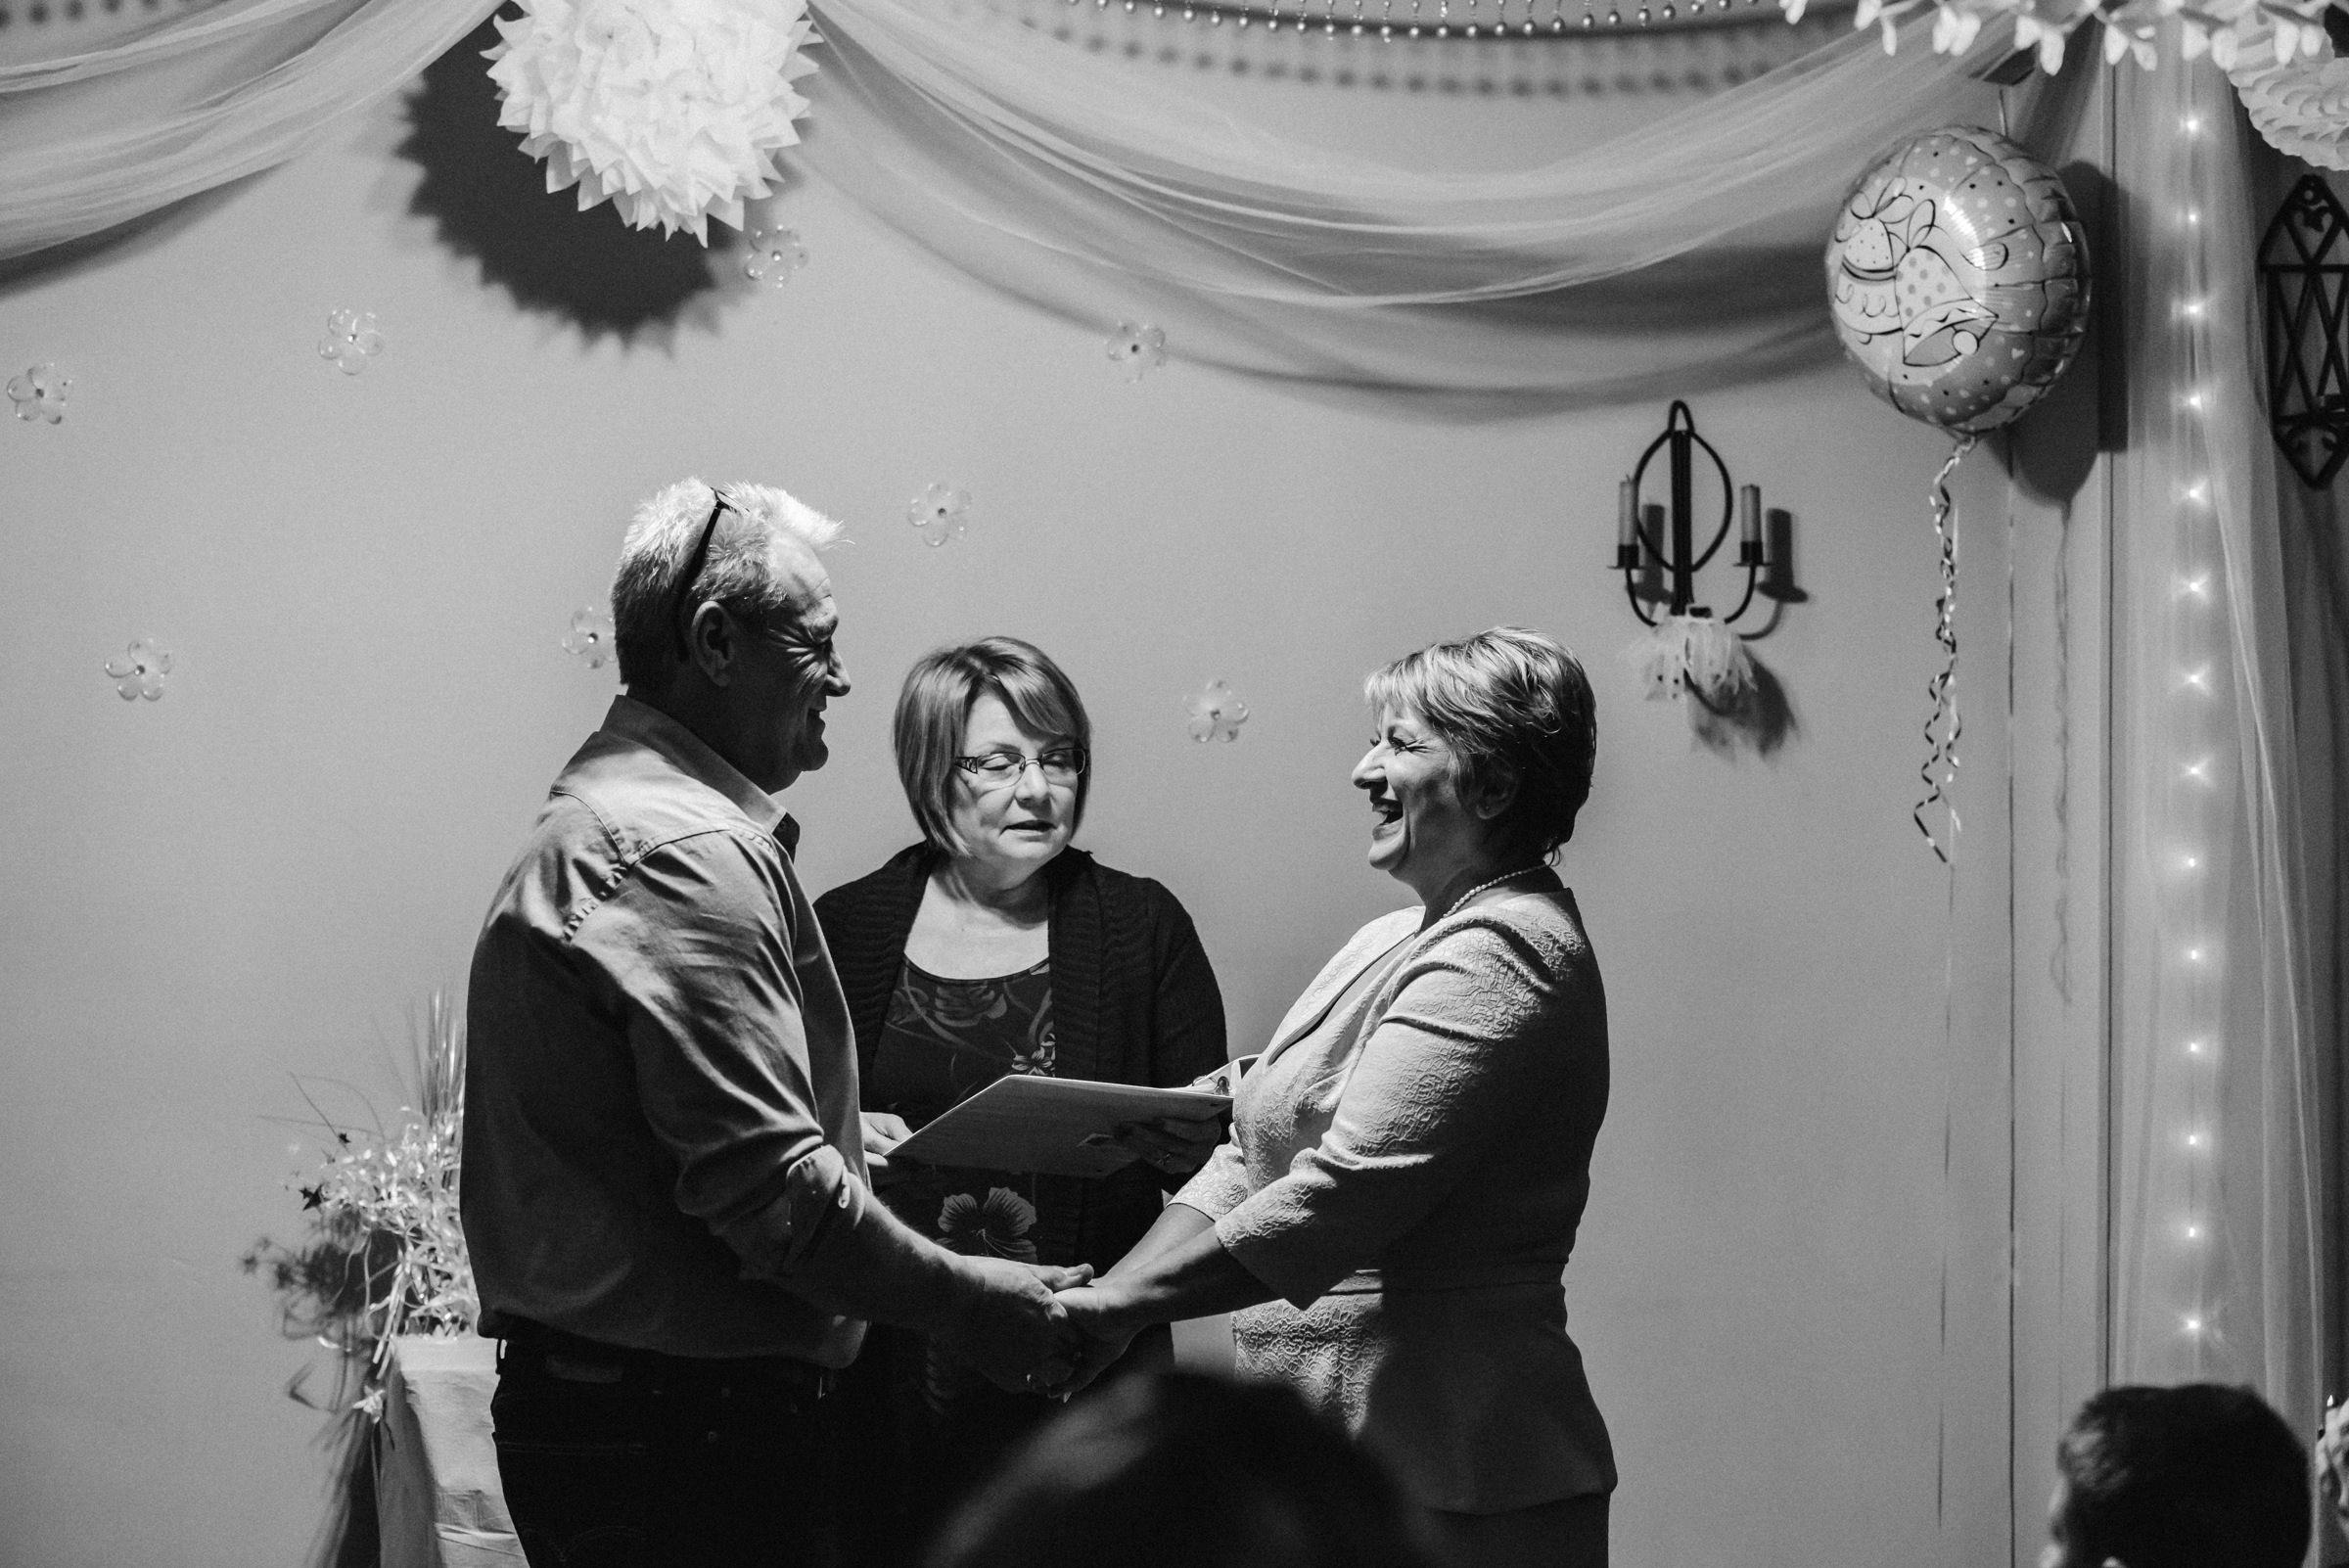 Nicola_Reiersen_Photography_Victoria_BC_Wedding_Photographer.jpg